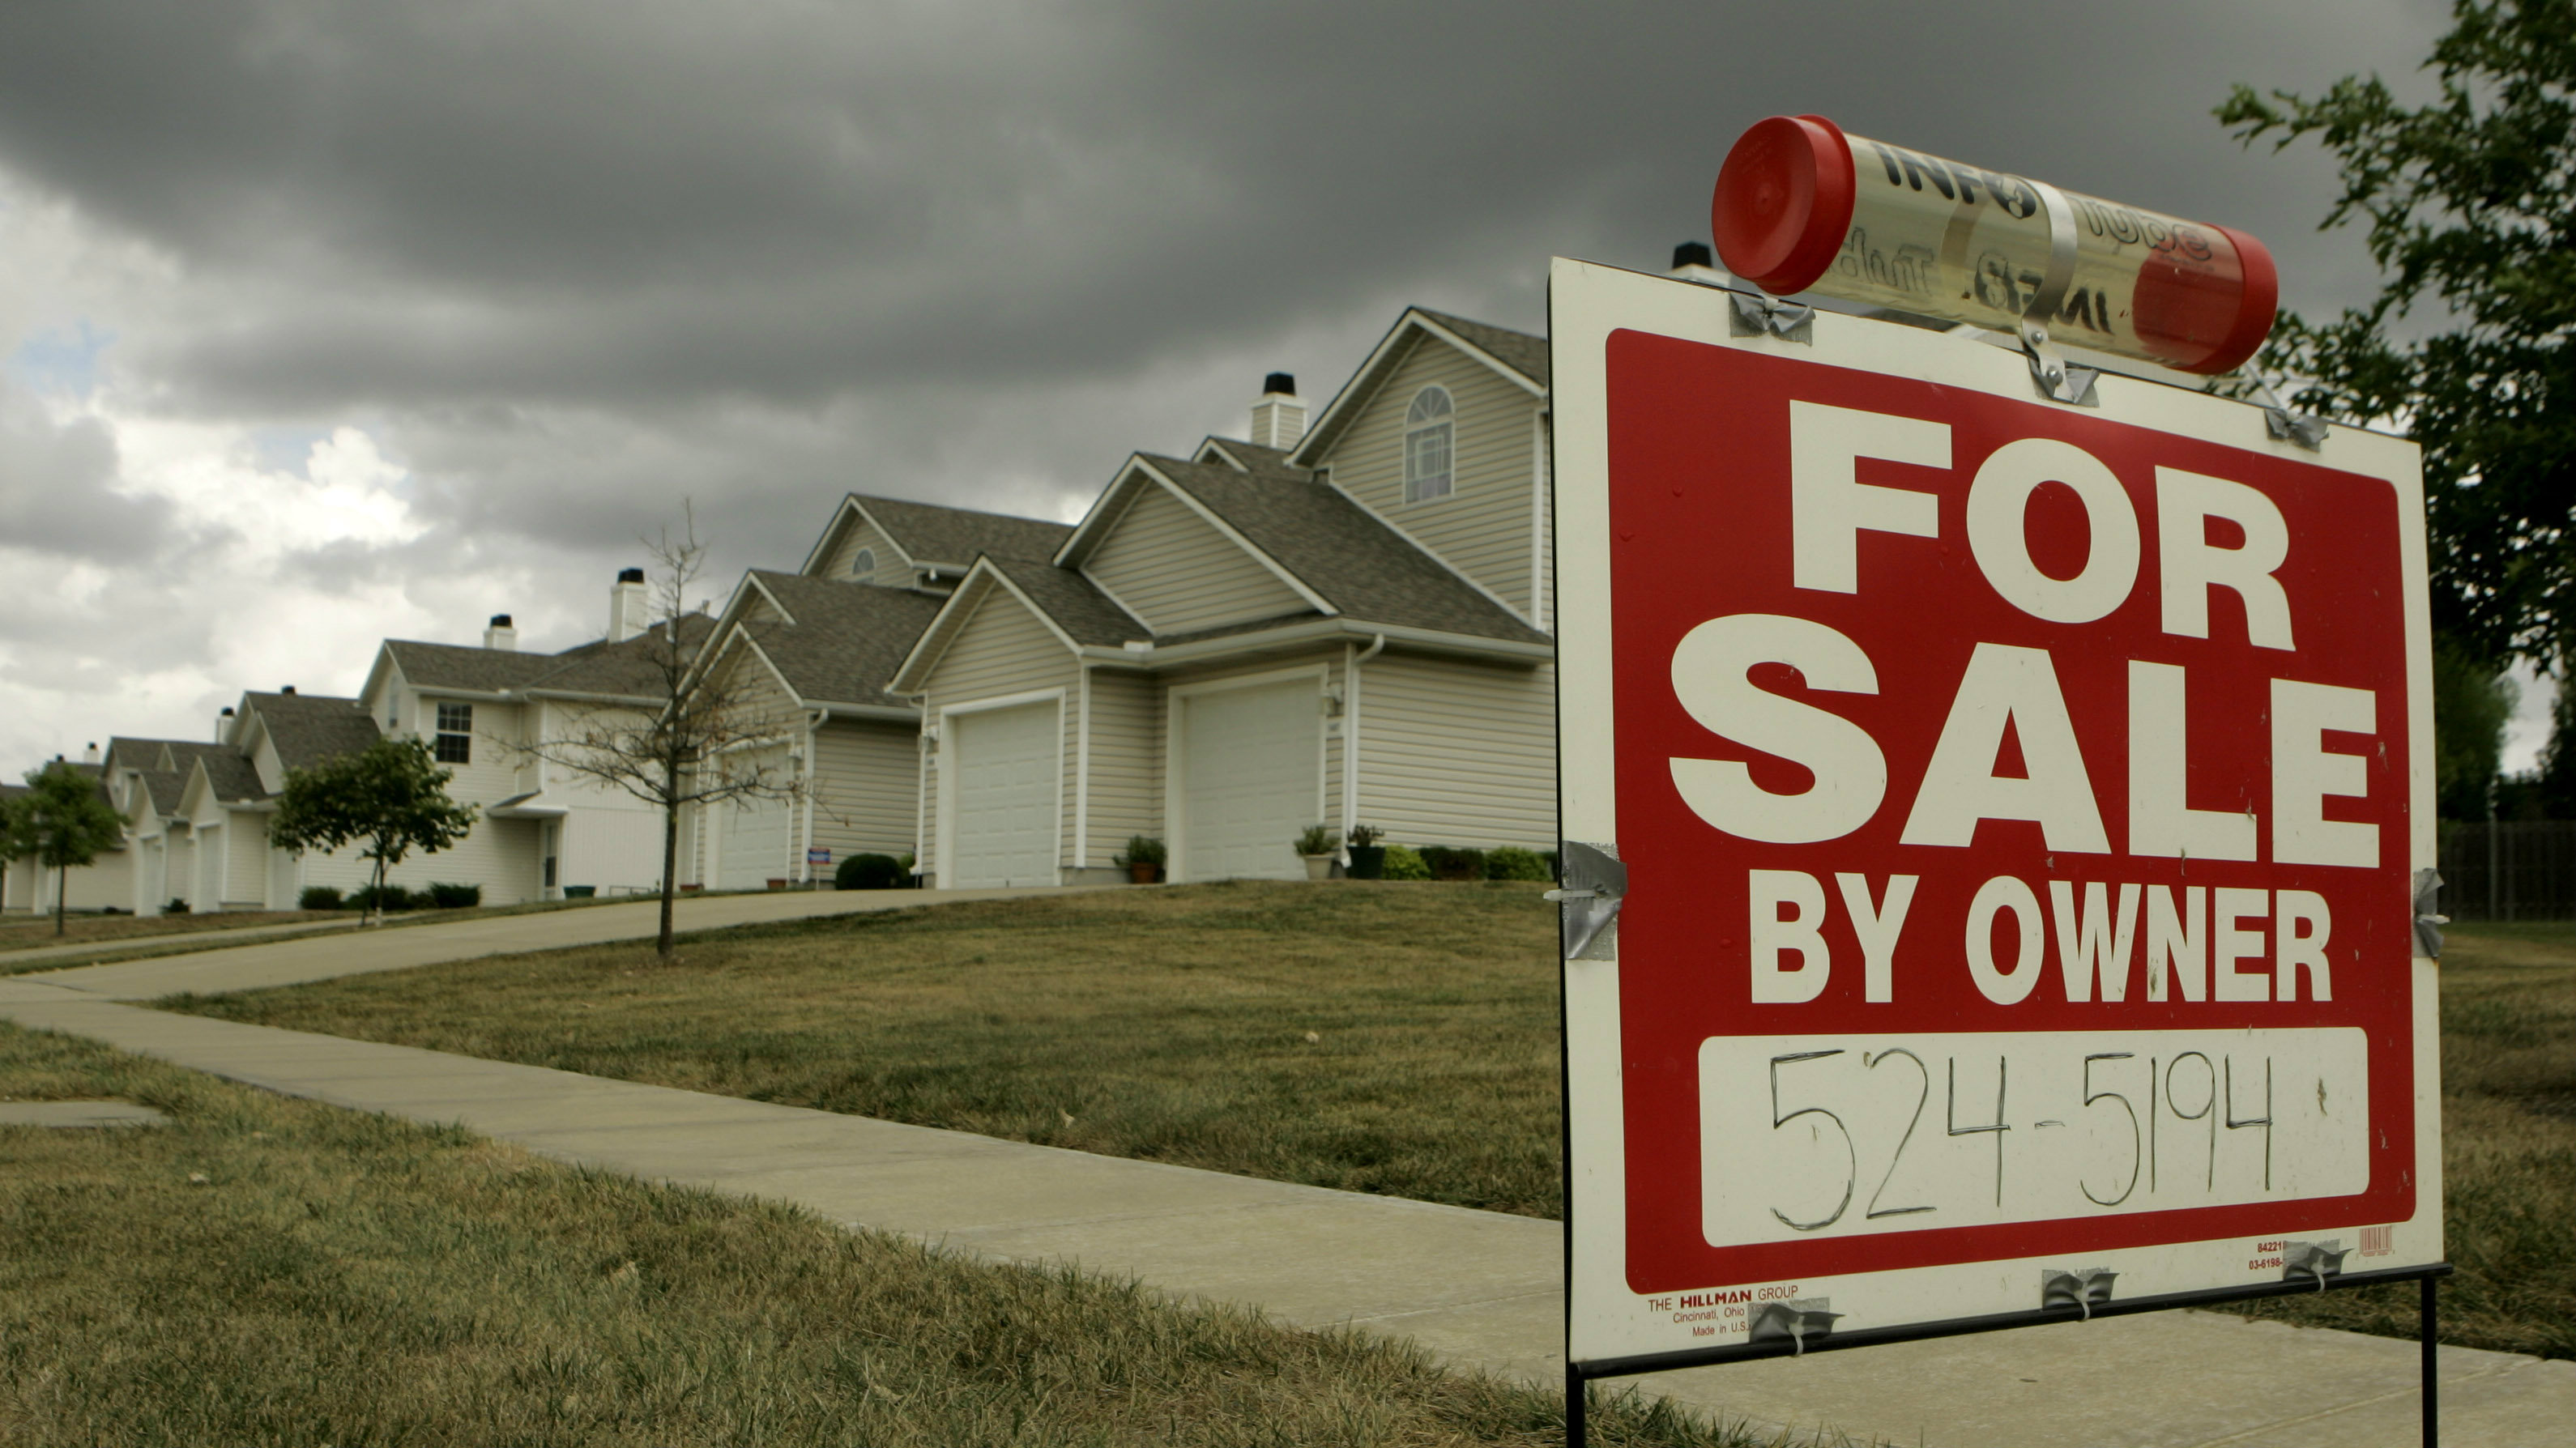 """For Sale"" sign in front of a row of houses"